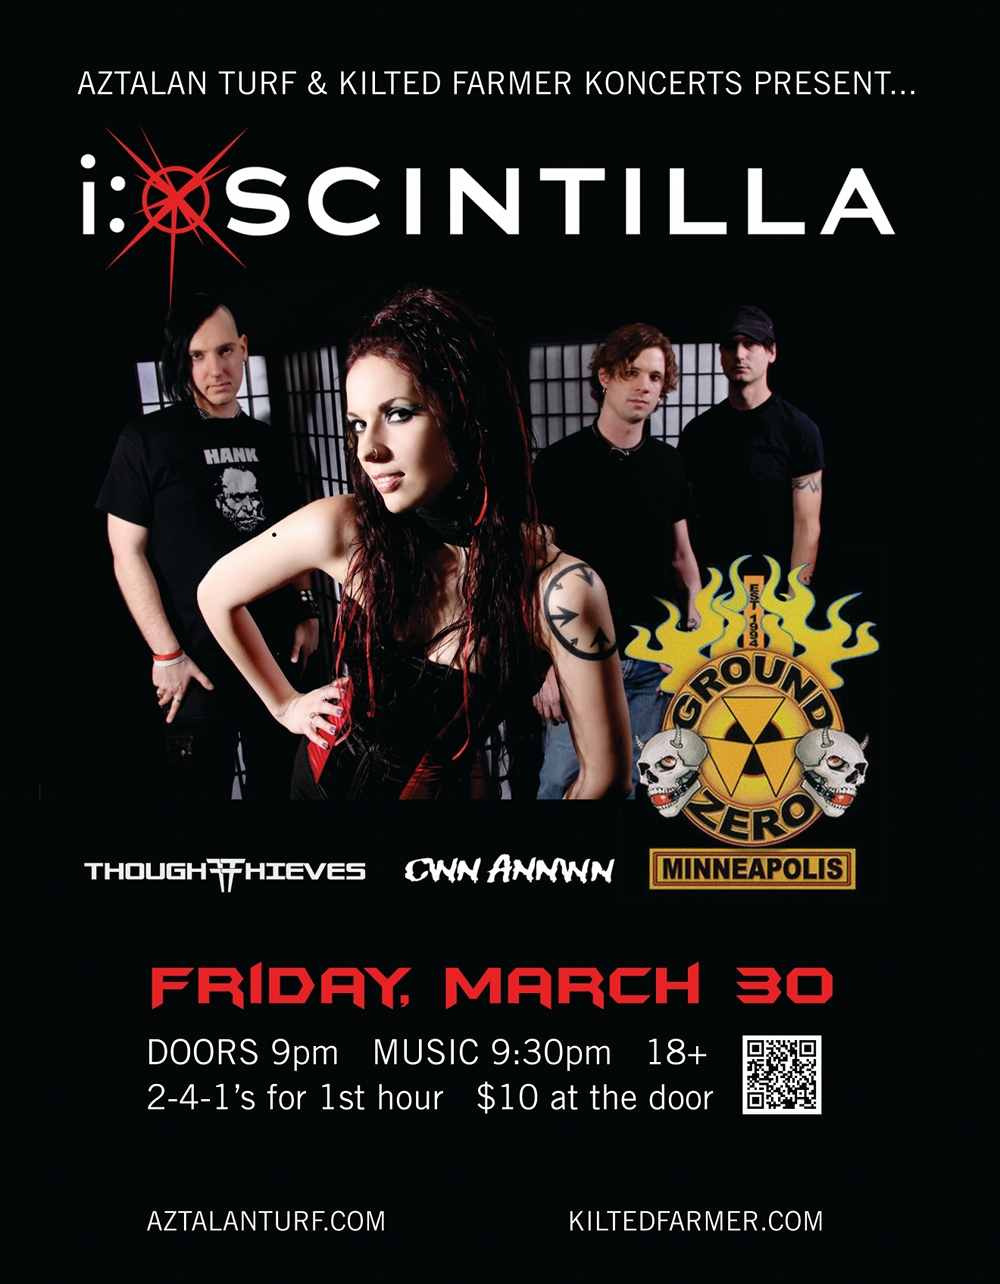 I:Scintilla March 30 Ground Zero flyer